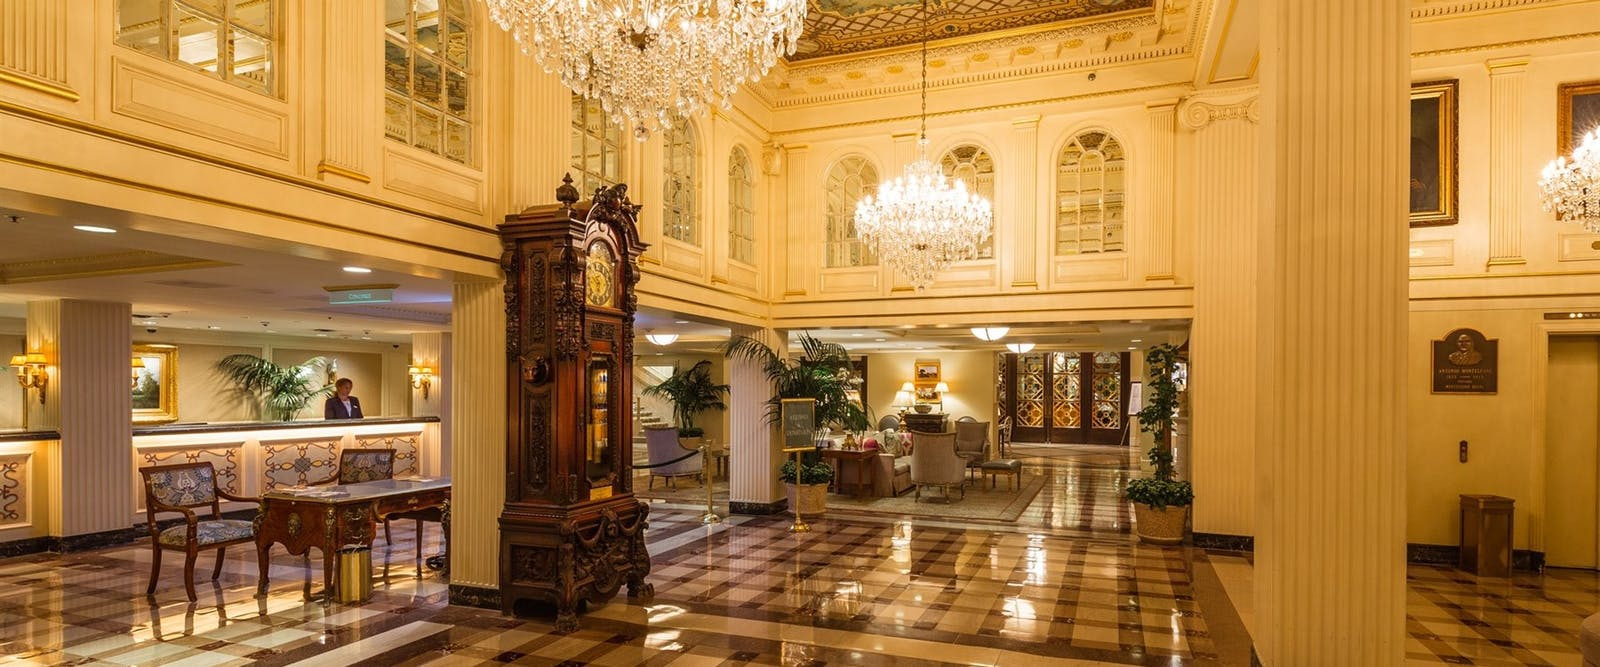 Lobby at Hotel Monteleone, New Orleans